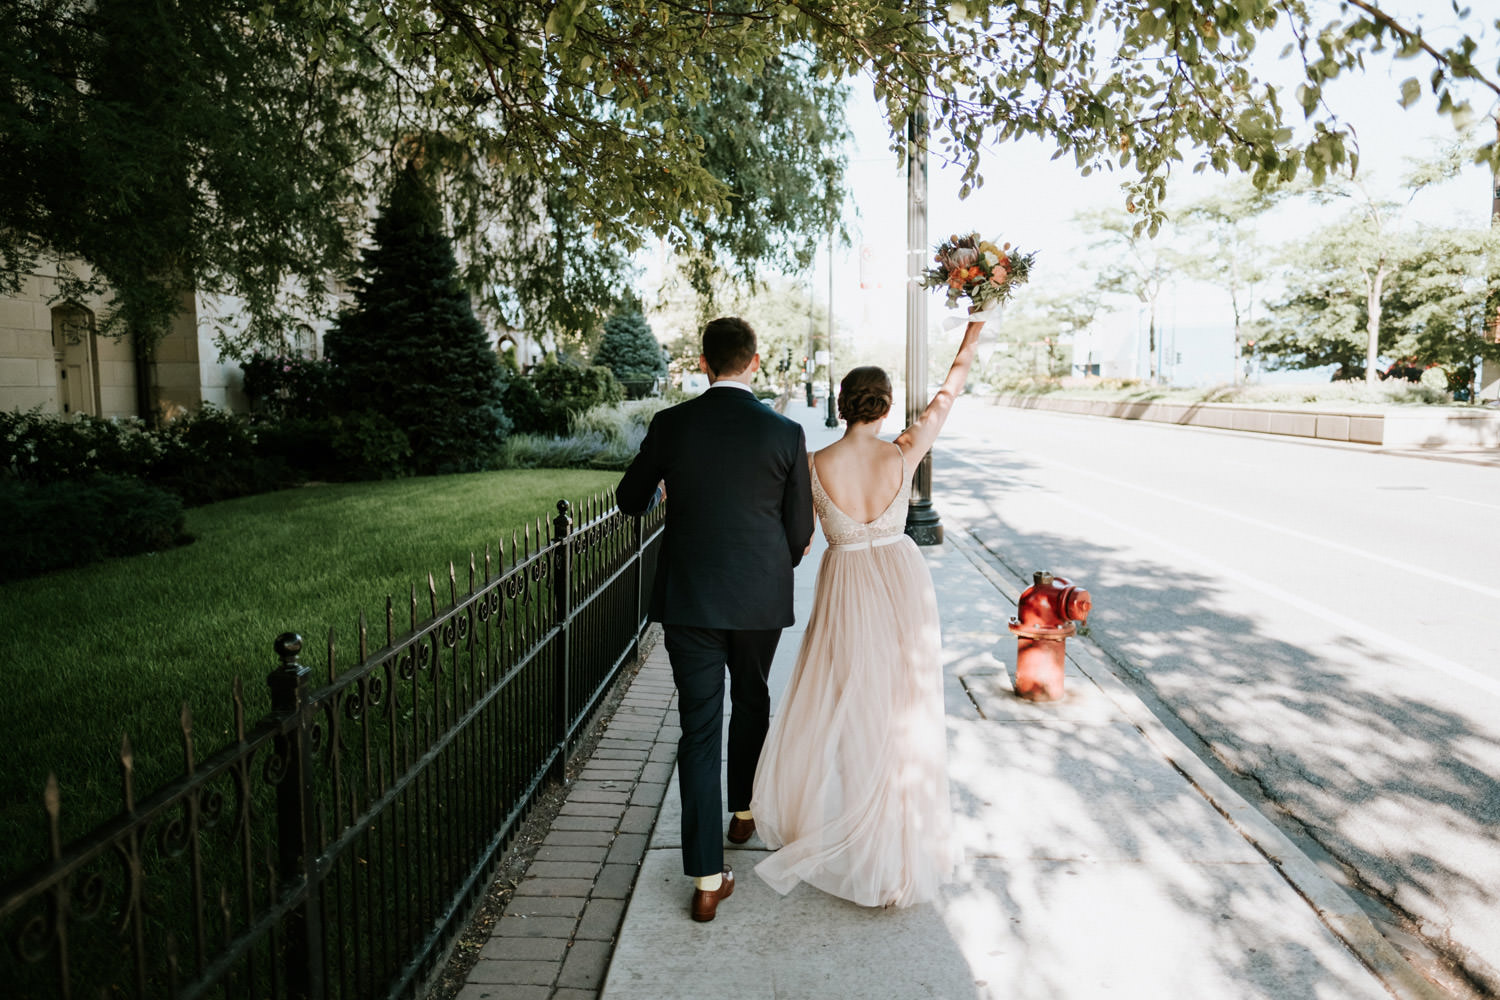 Bride and groom walk down the street in Pilsen, Chicago